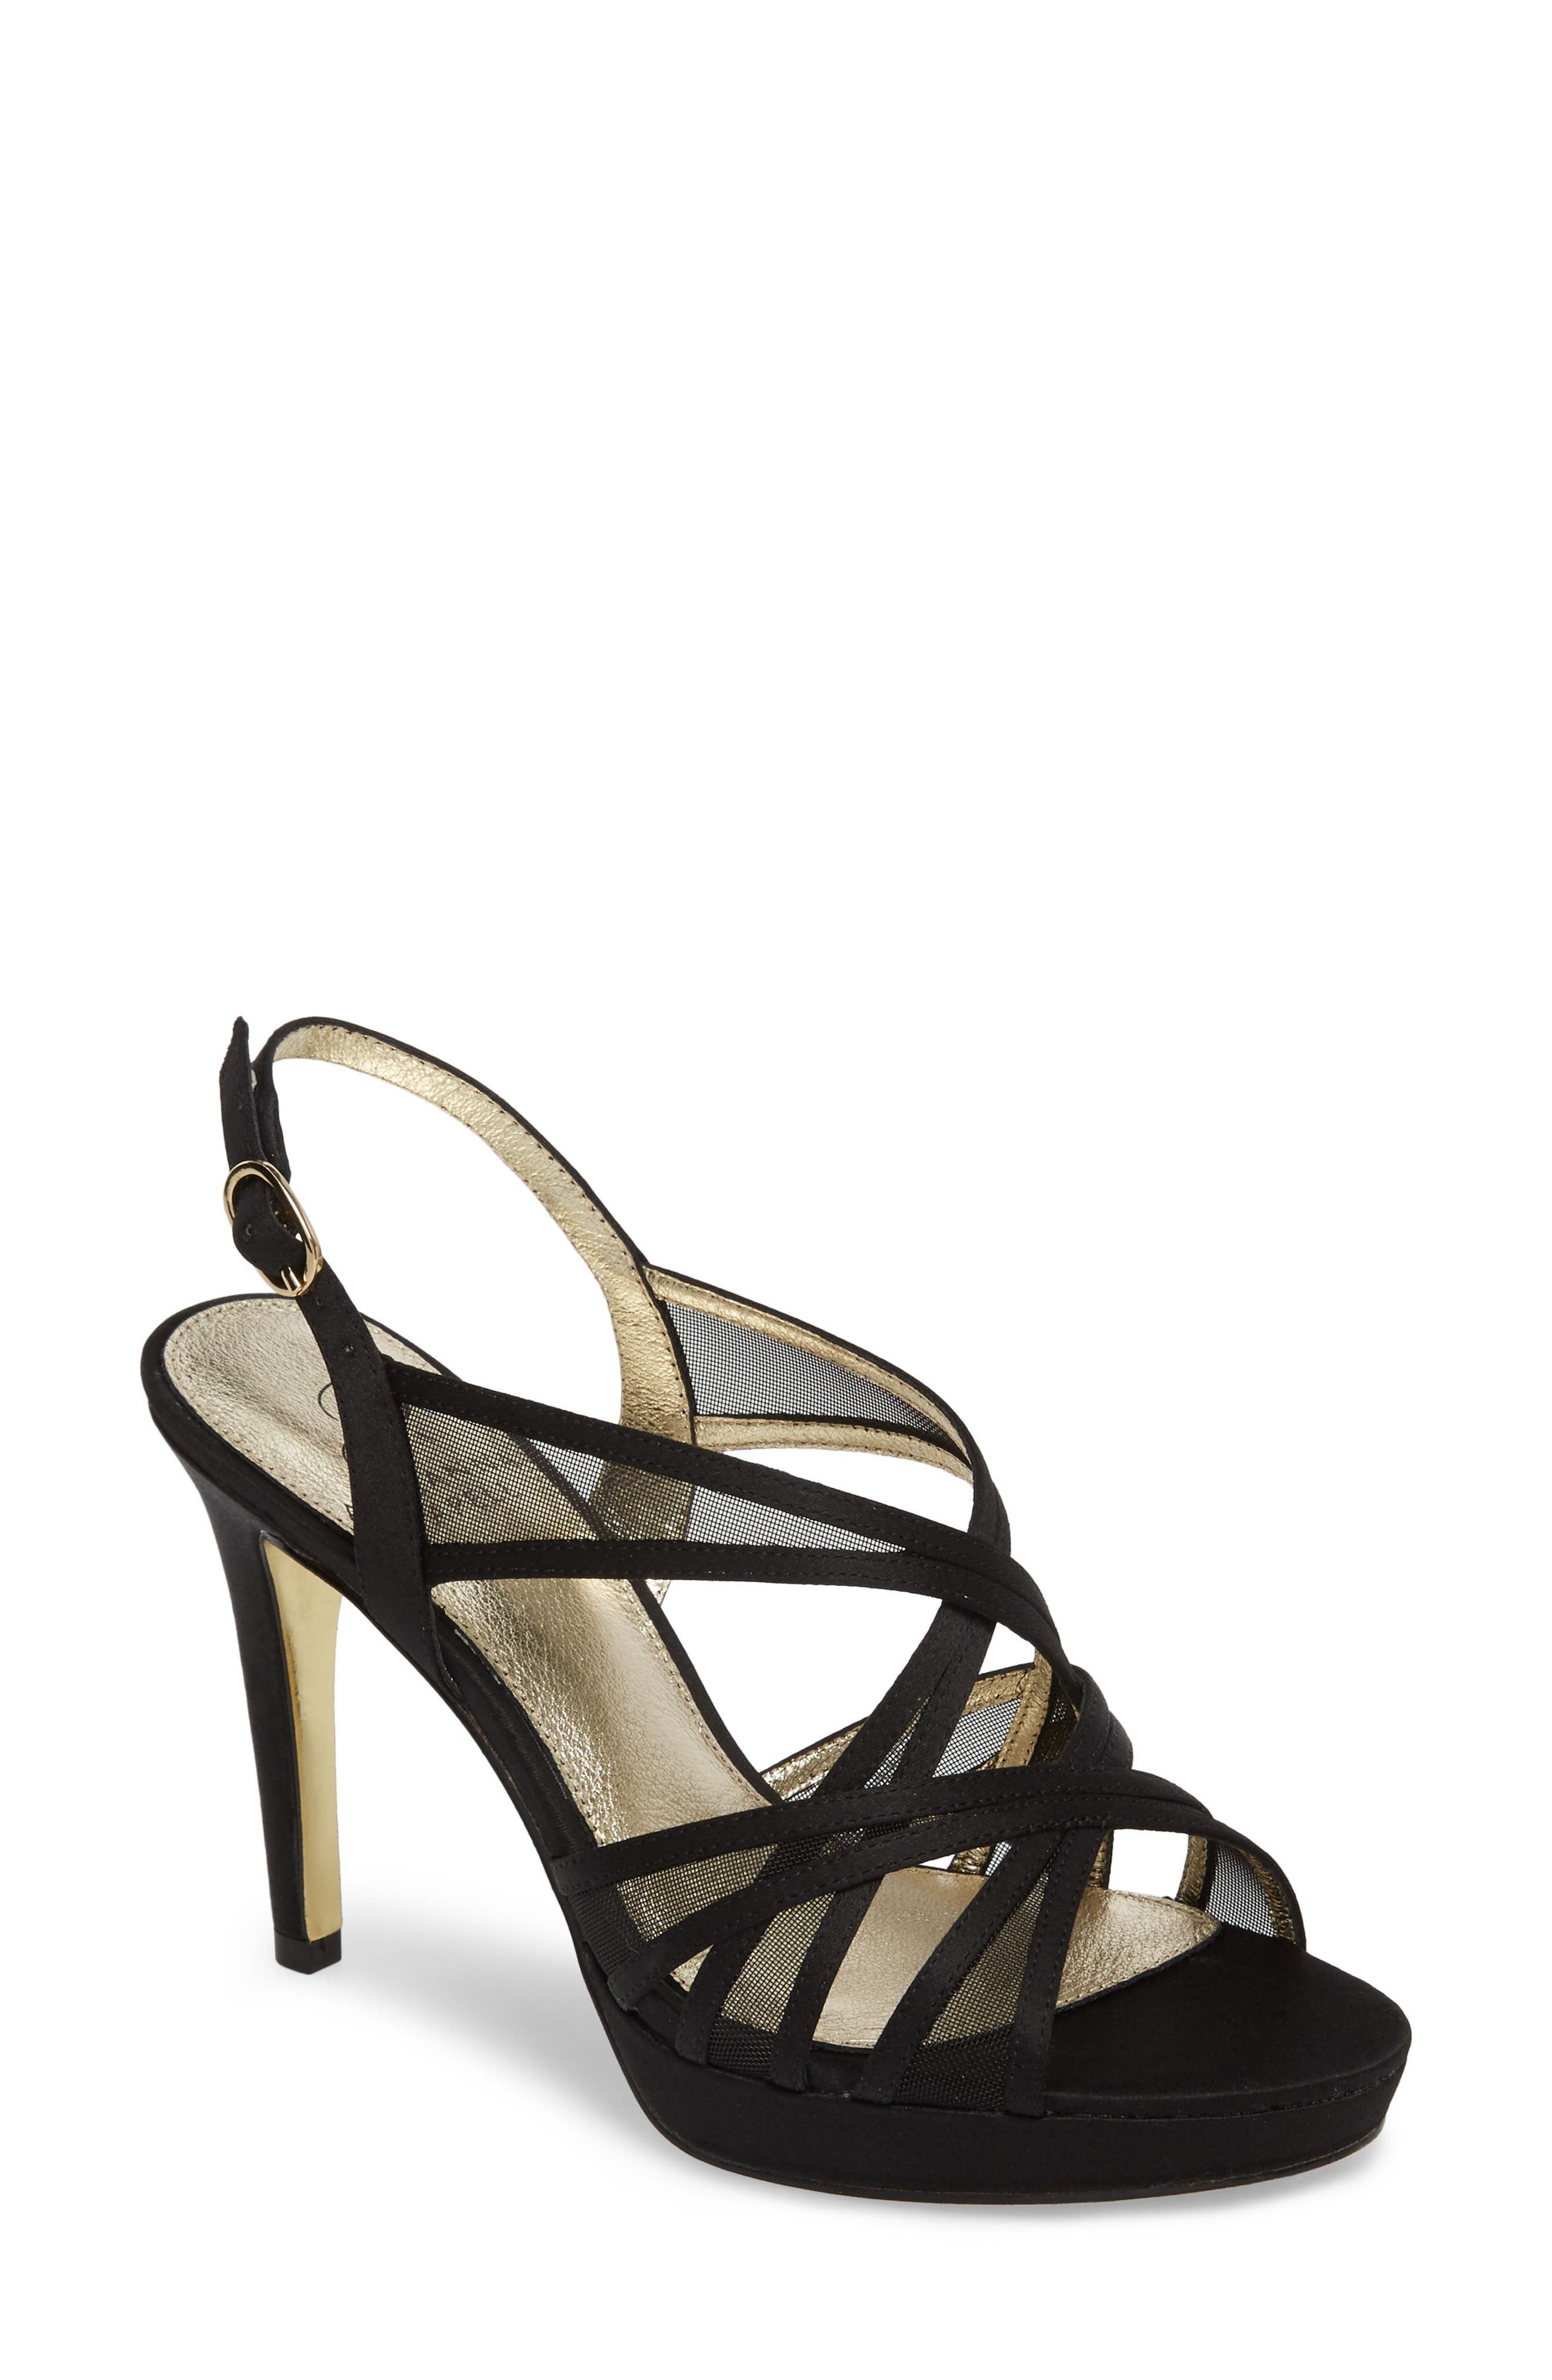 Adri Platform Sandal,                             Main thumbnail 1, color,                             Black Satin